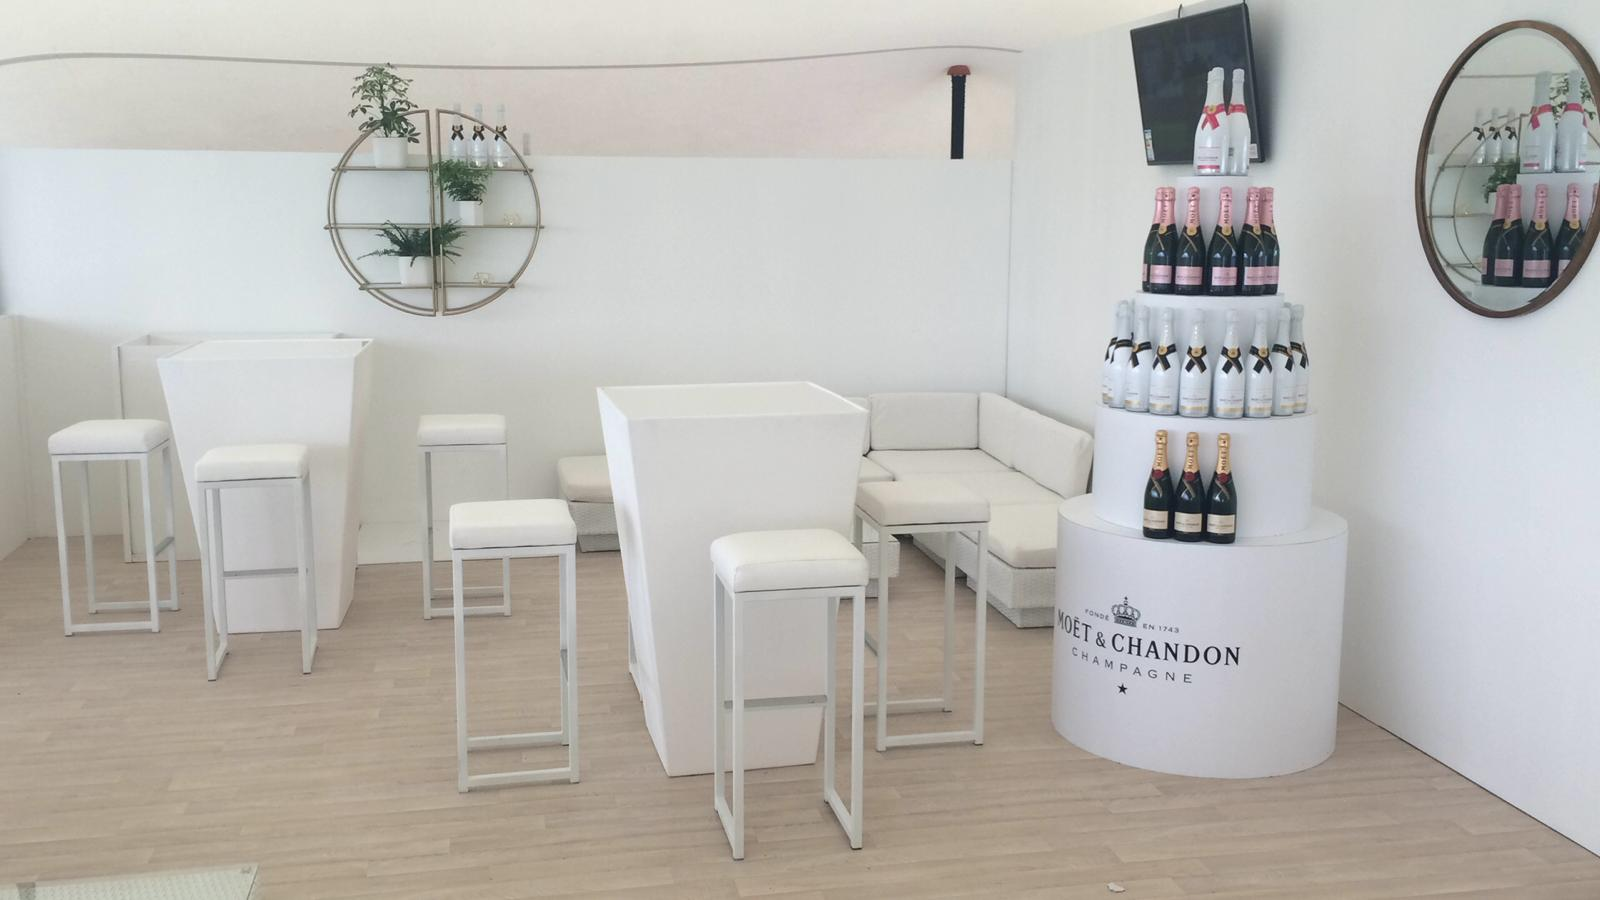 hi-ball-poseur tables and kubo bistro stolls in Moet VIP lounge at Epsom